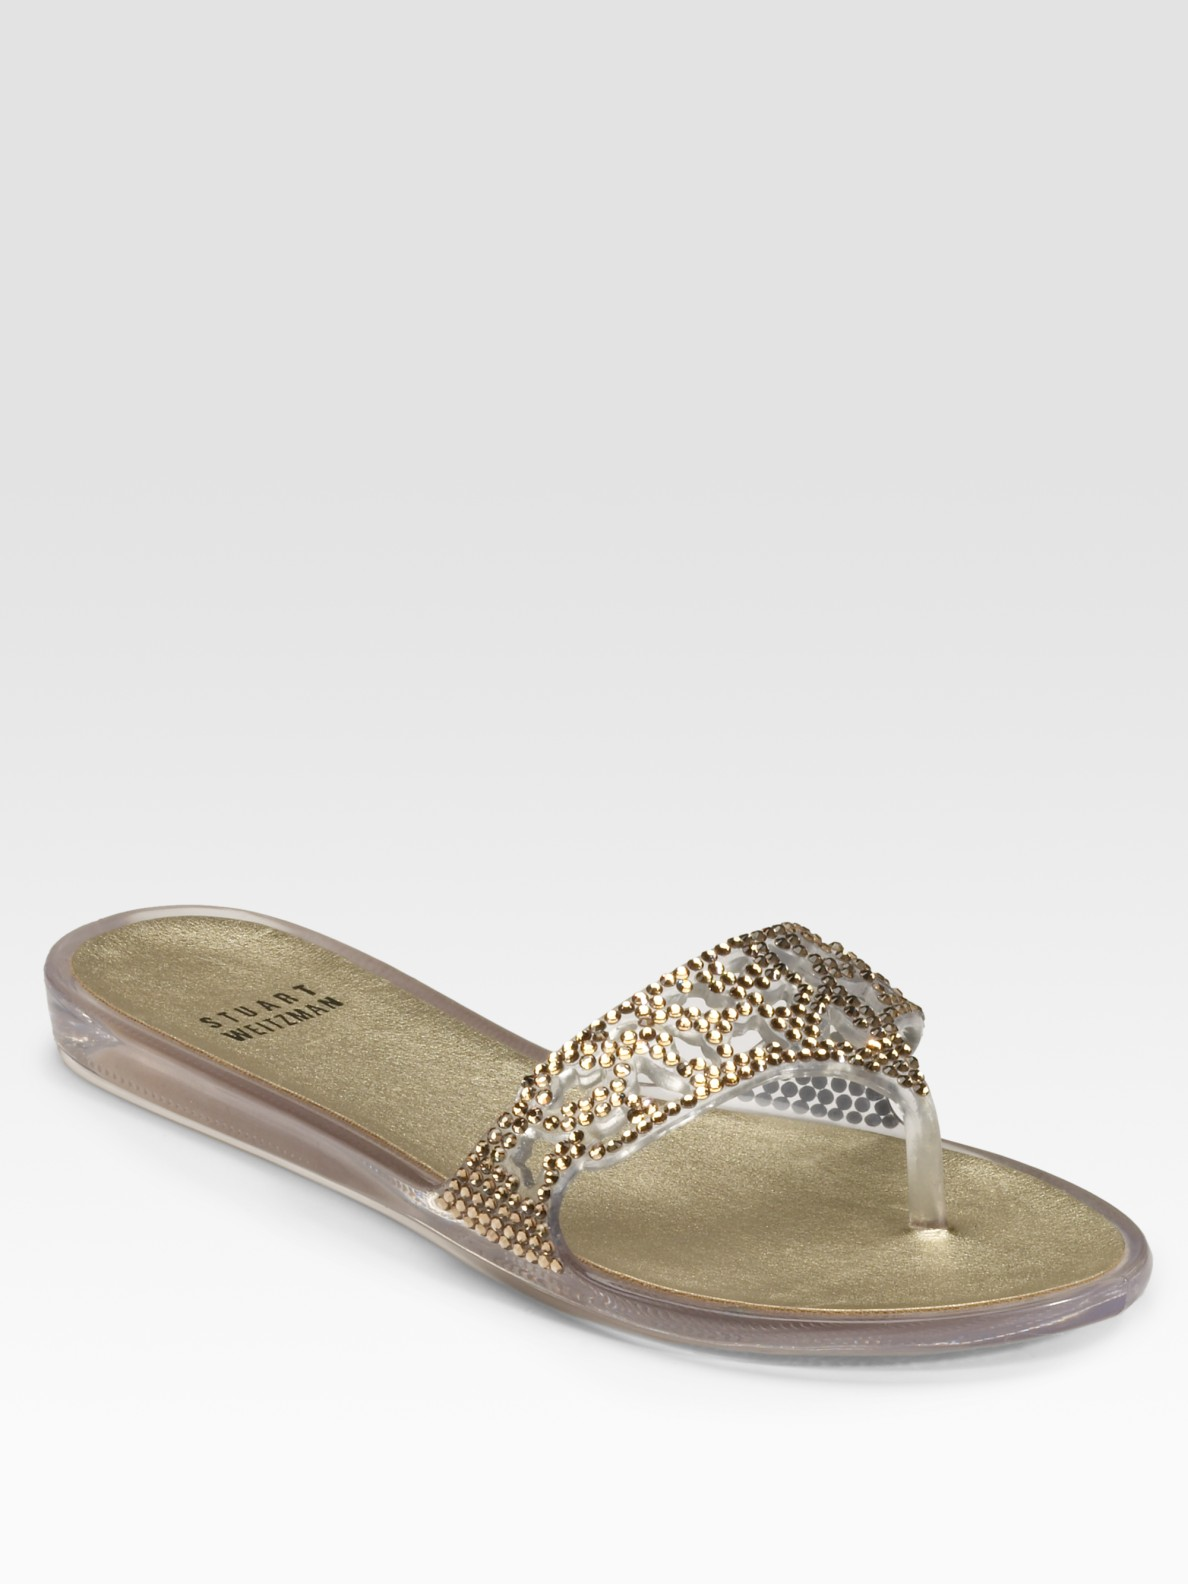 Stuart Weitzman One The Rocks Jeweled Jelly Flat Sandals